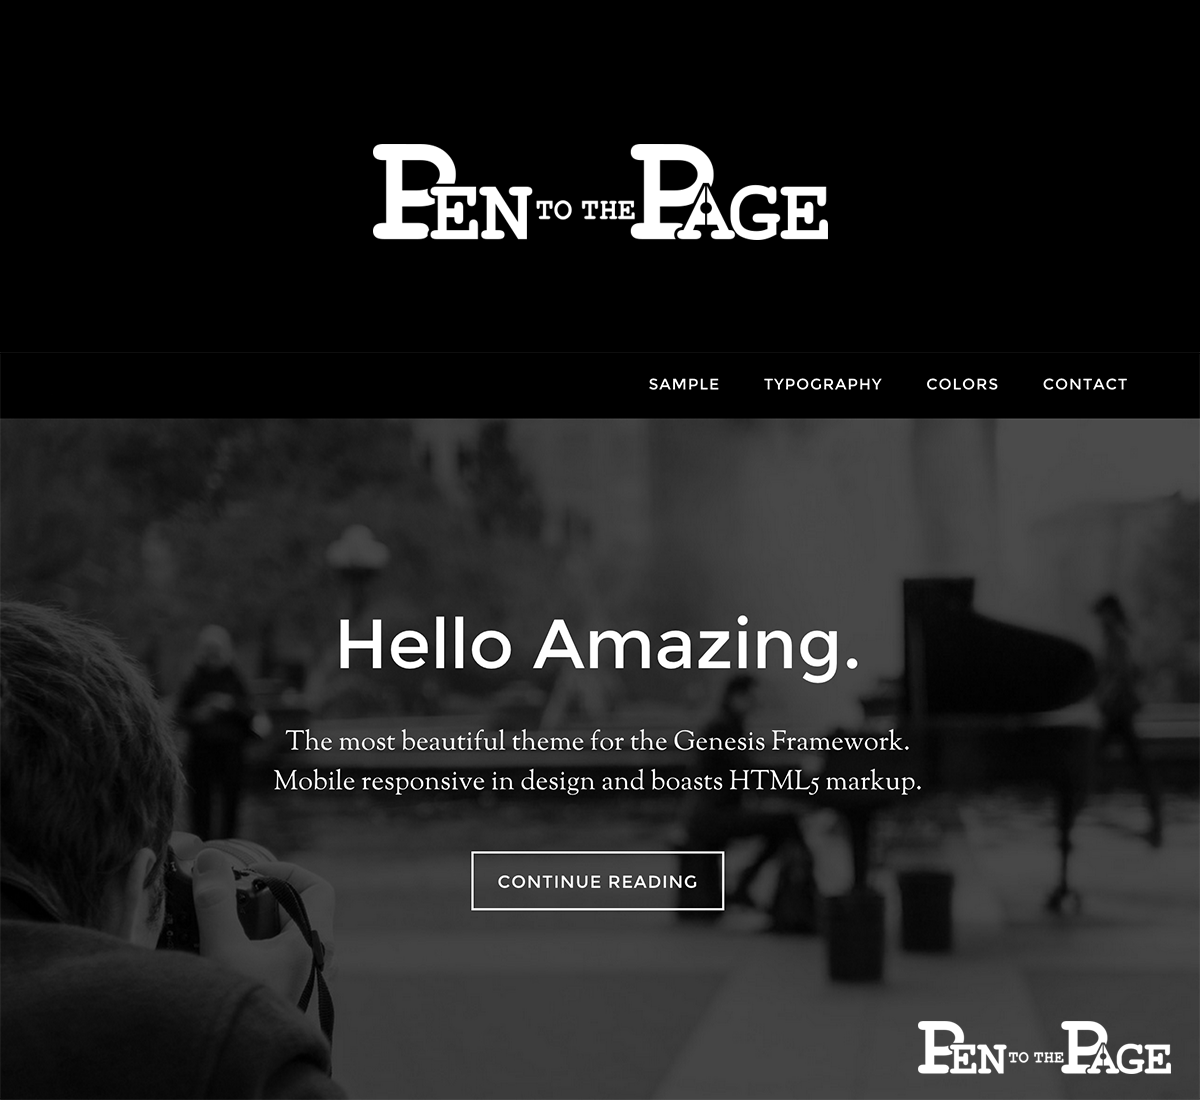 Create a logo for an up and coming creative writing website